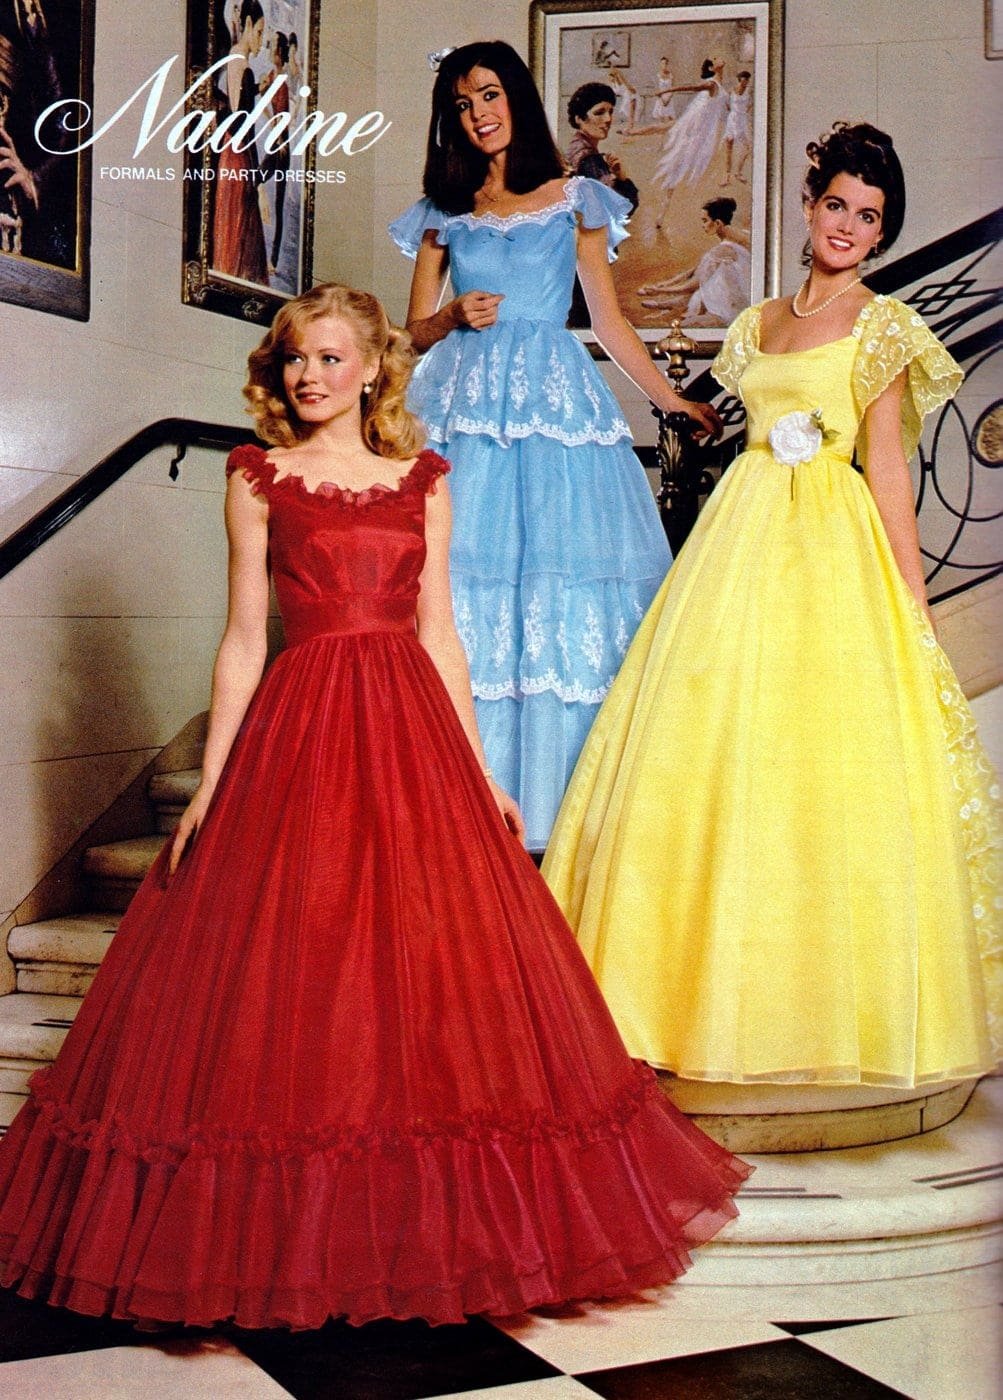 Nadine brand prom dresses in red blue and yellow from 1981